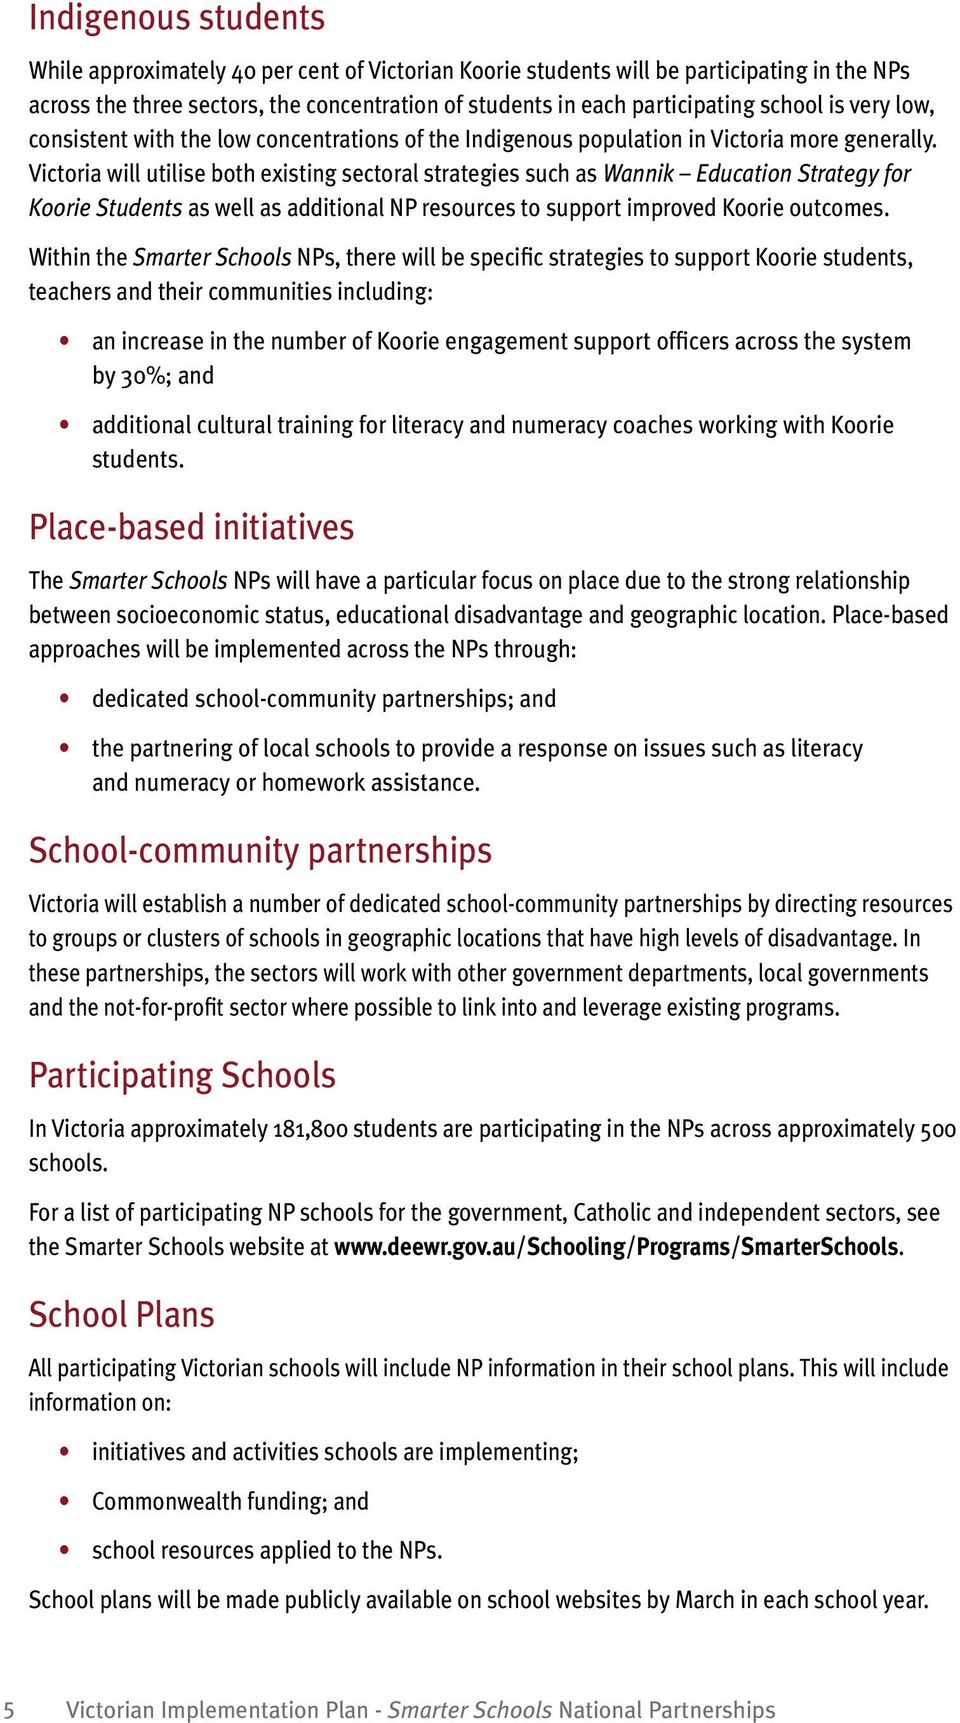 Victoria will utilise both existing sectoral strategies such as Wannik Education Strategy for Koorie Students as well as additional NP resources to support improved Koorie outcomes.